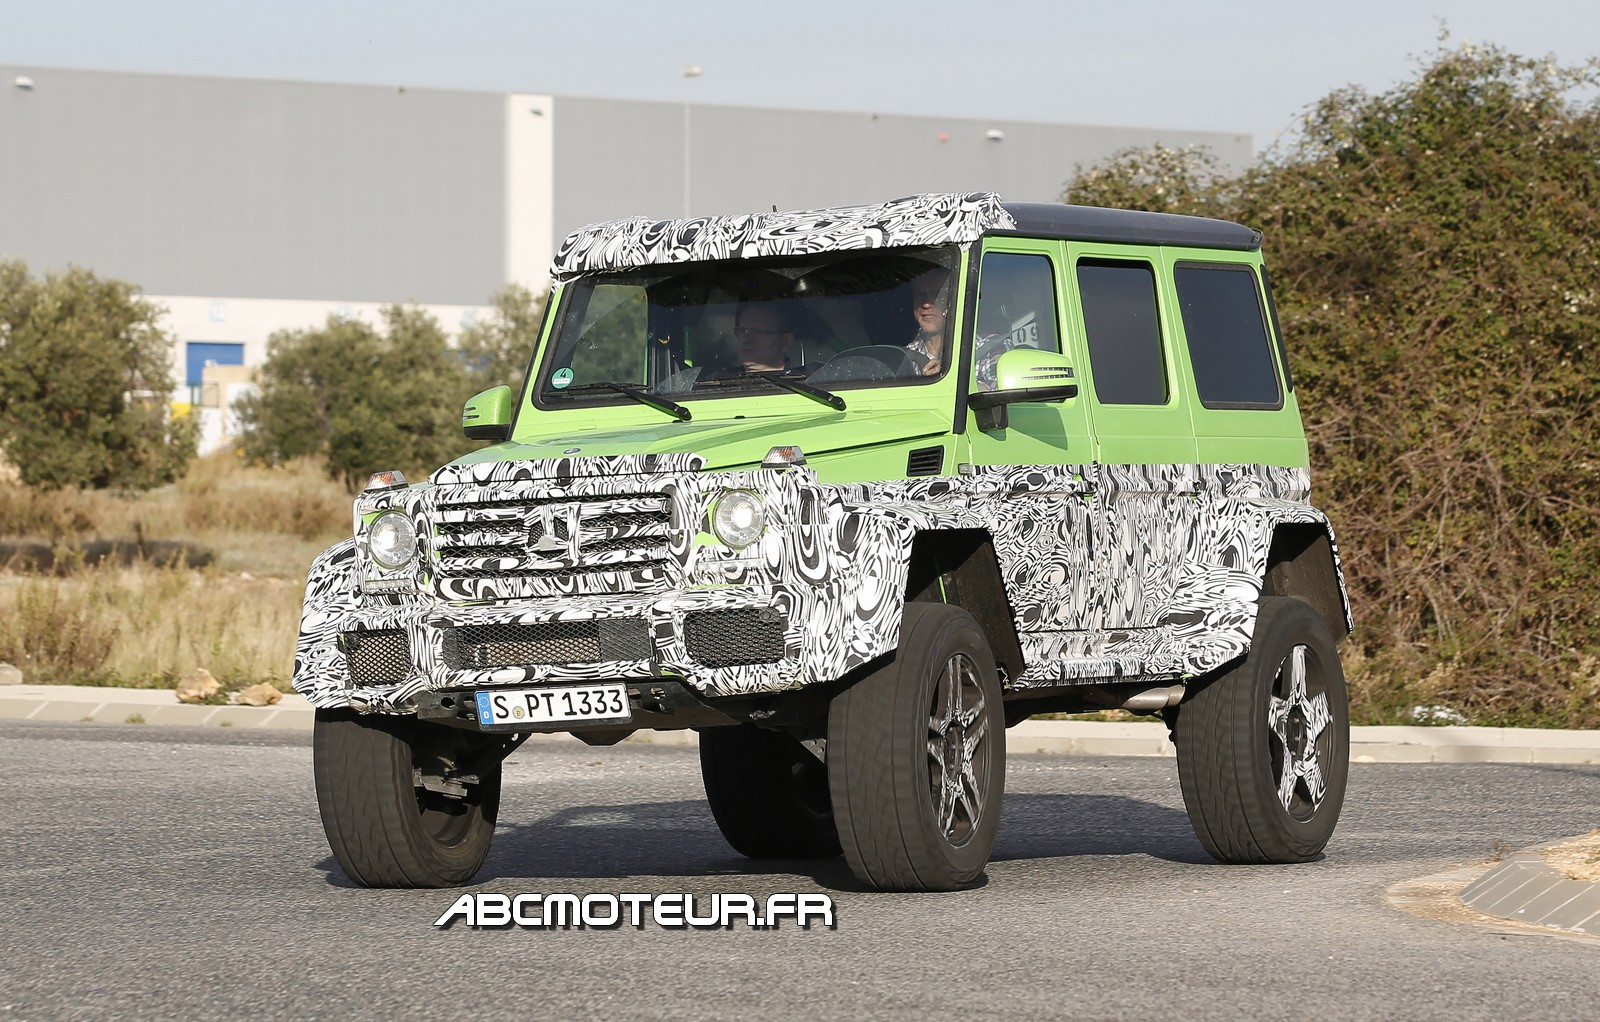 Mercedes G 63 AMG : « Green Monster » perd 2 roues !